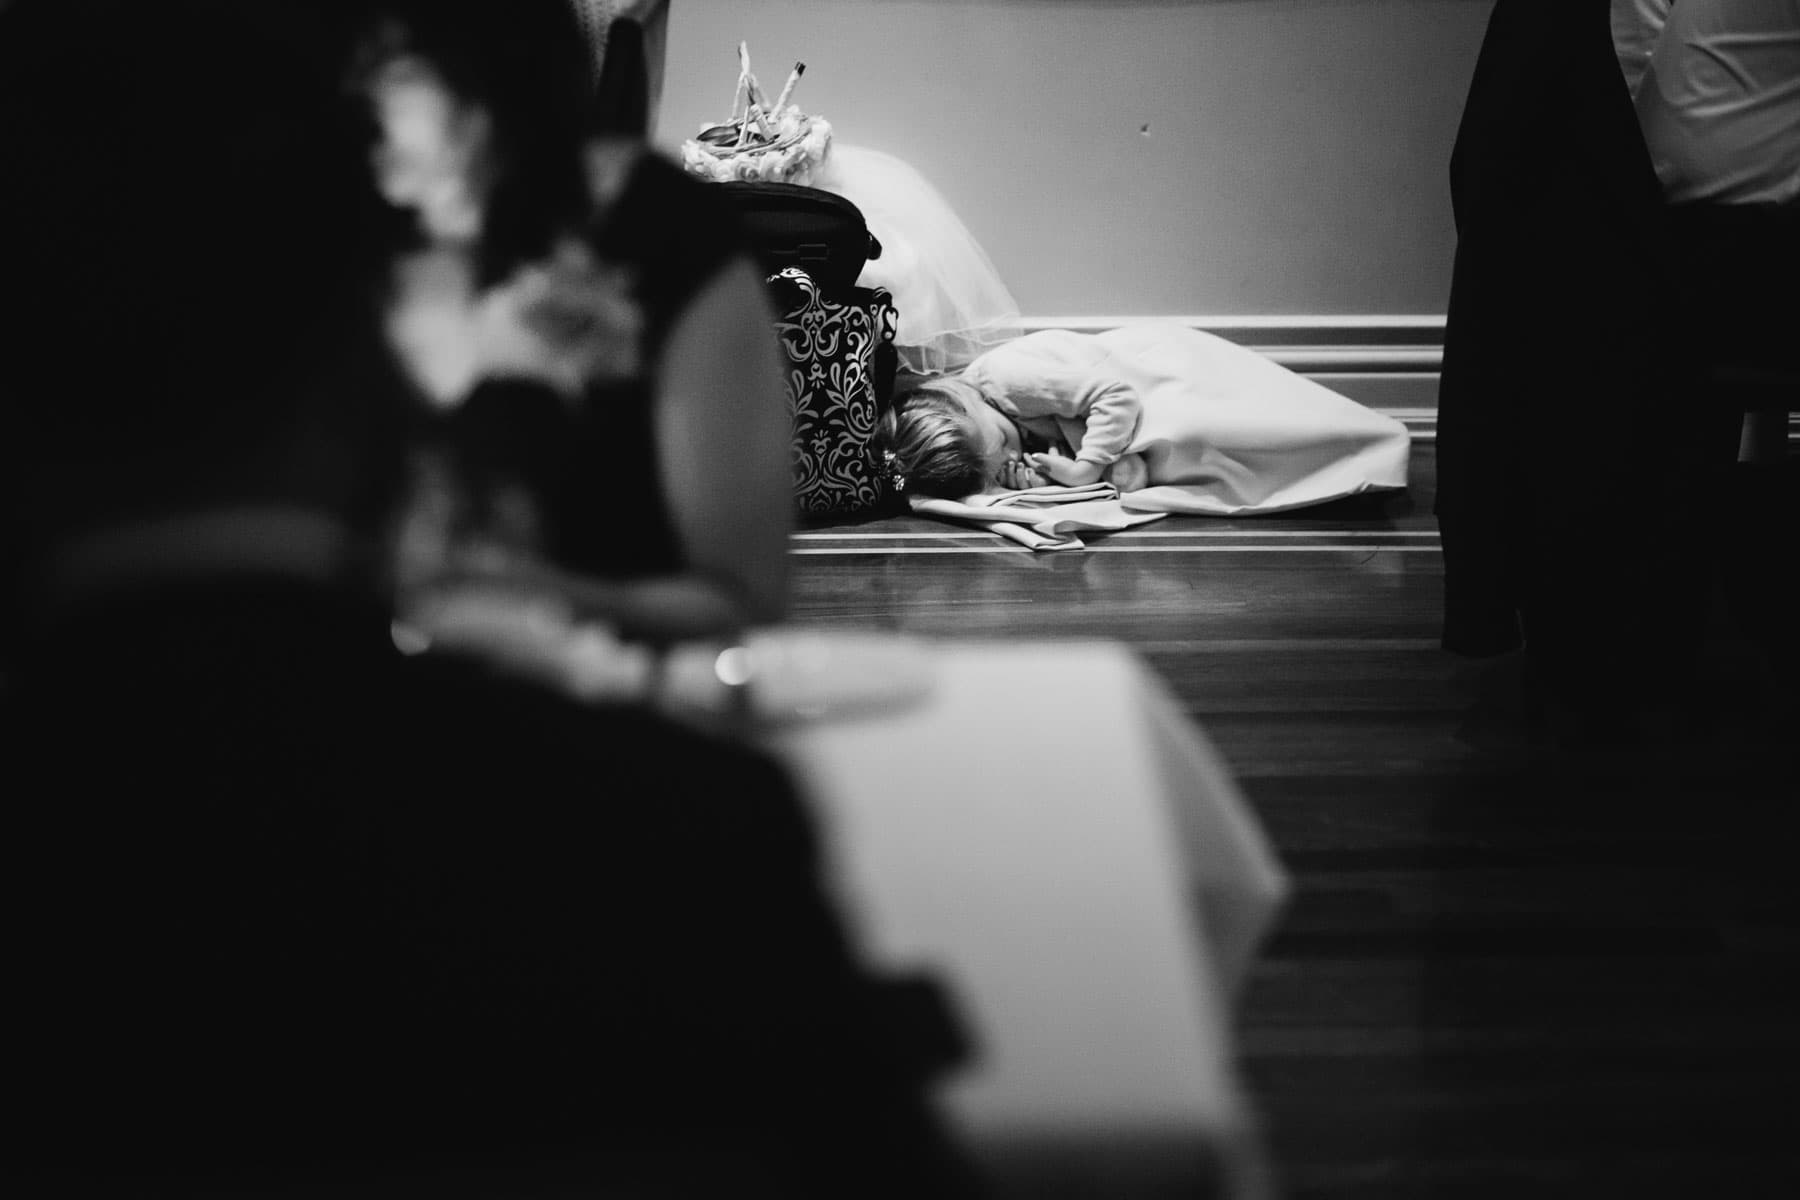 A girl sleeps on the floor covered by a blanket after a fully day at a wedding at this Splendido Restaurant wedding reception.